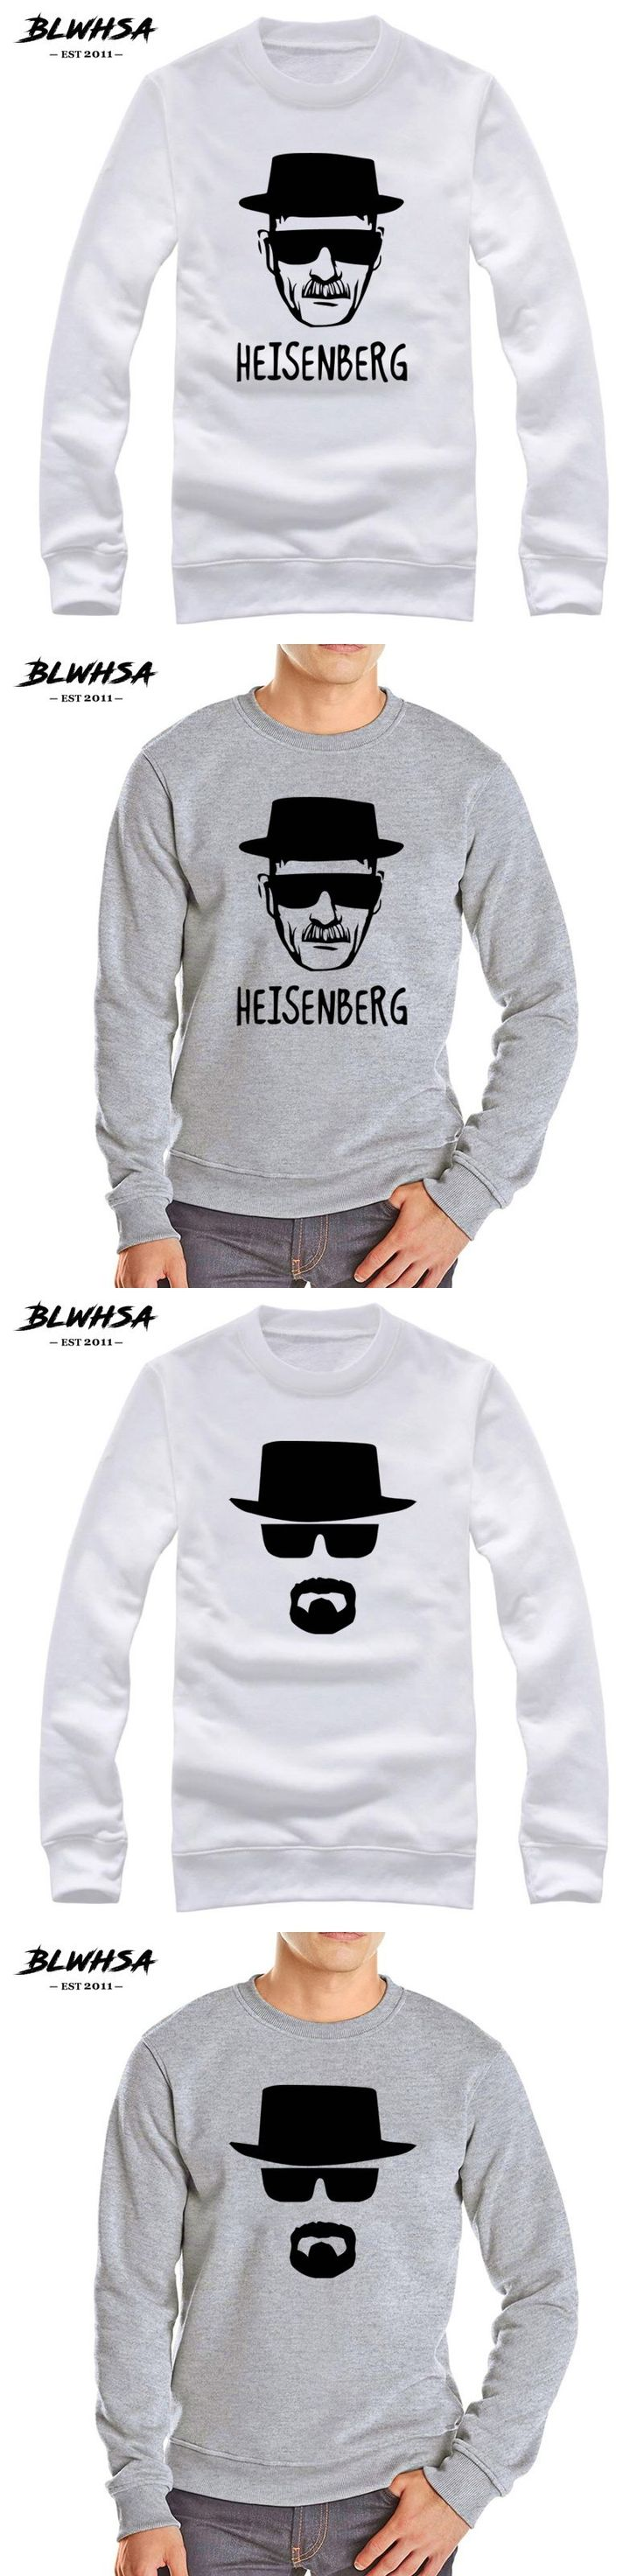 BLWHSA Heisenberg Breaking Bad Hoodies Fleece Sweatshirt For Men Hoody high Quality Casual Autumn Winter Men's Sportswear Hoodie